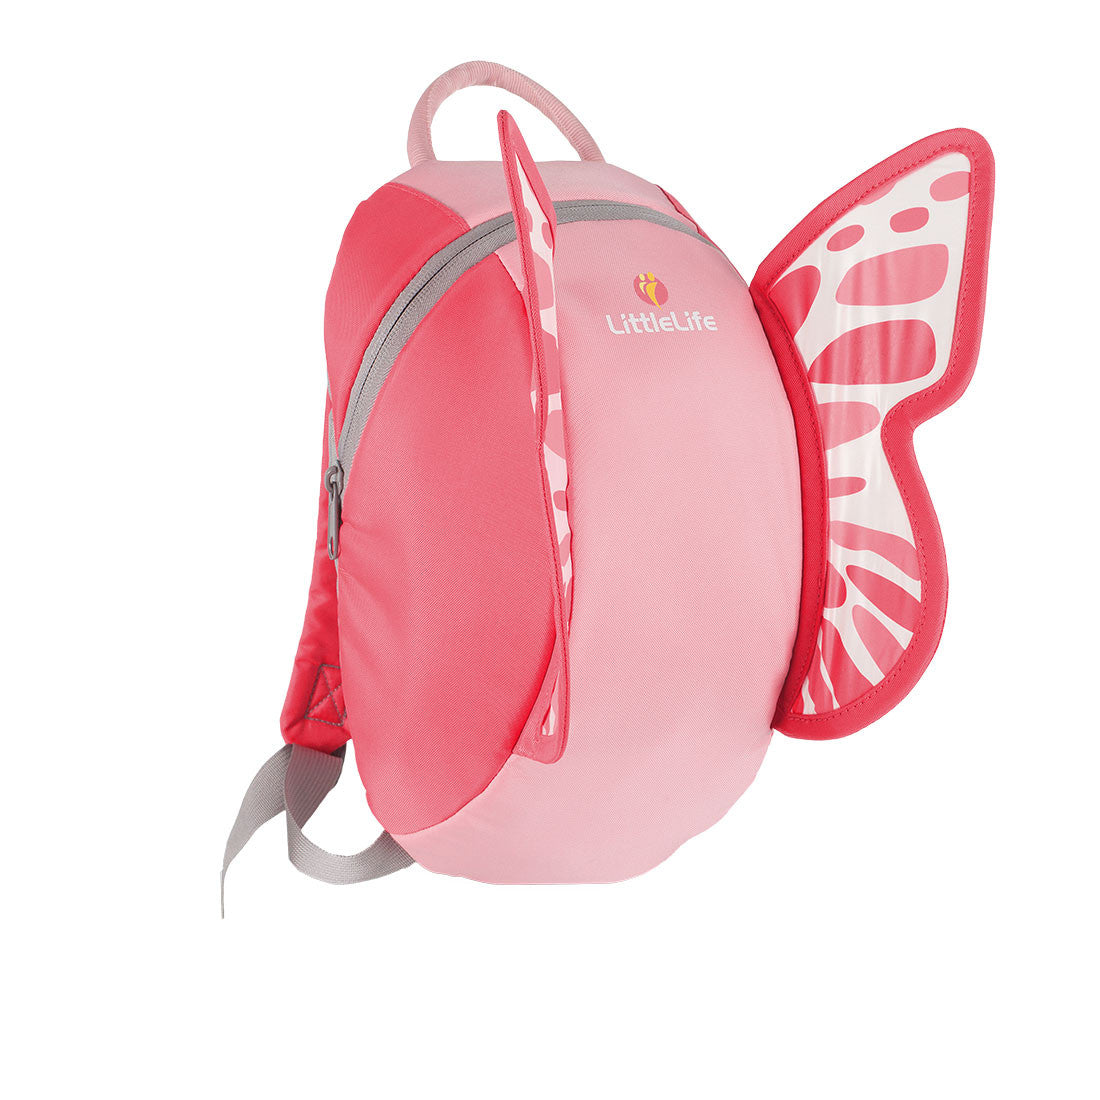 LittleLife-Butterfly Kids Backpack-Kids Bag-Gearaholic.com.sg